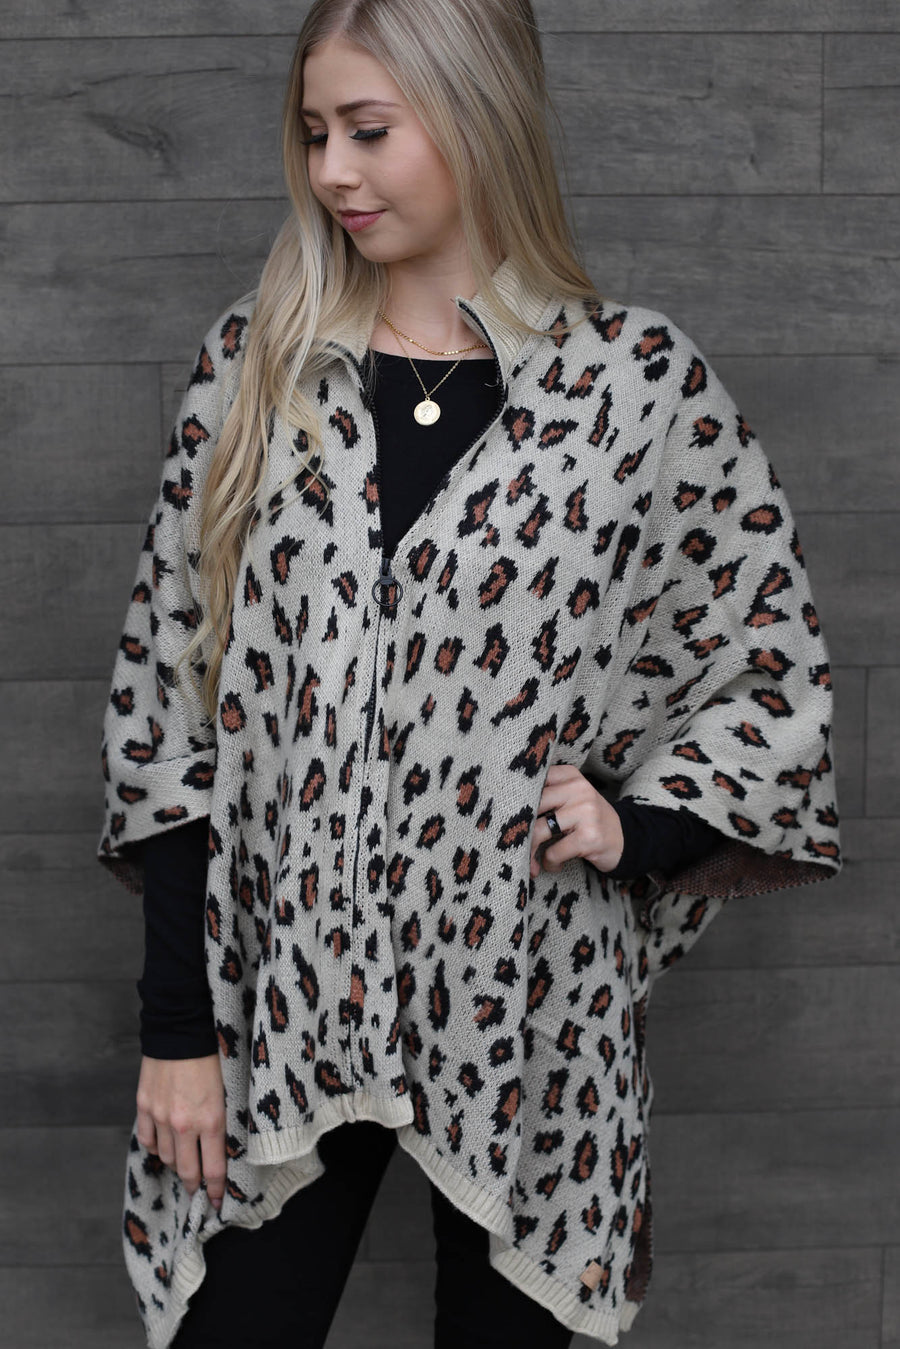 Leopard Poncho - Light Tan - ShopSpoiled